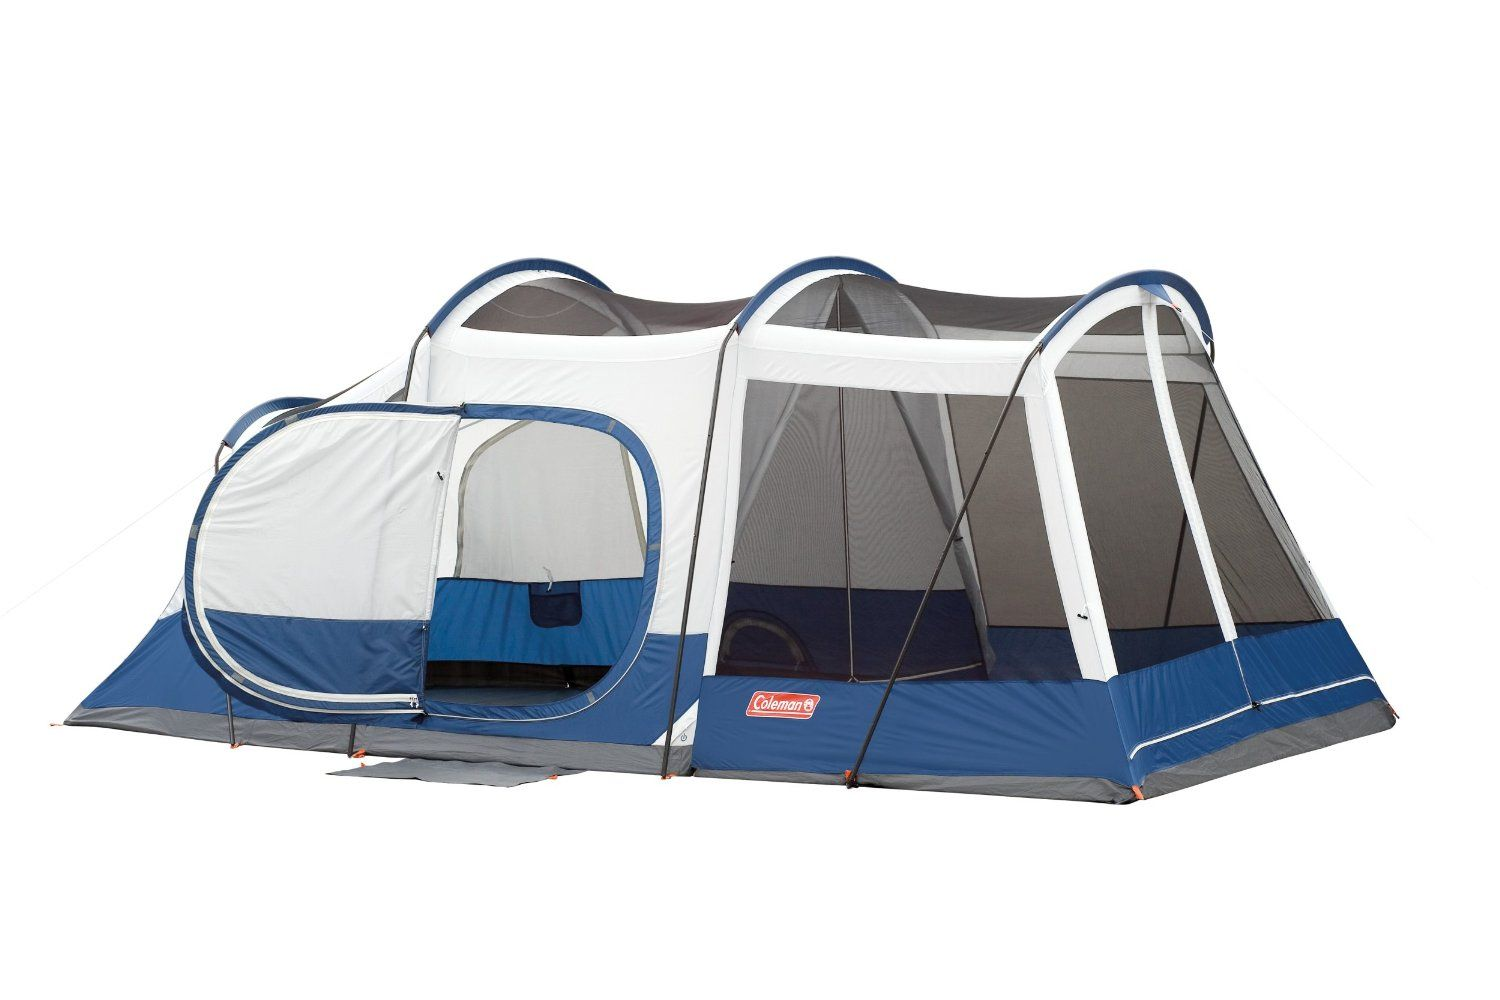 Amazon.com  Coleman 17- by 9-Foot 6- to 8-  sc 1 st  Pinterest & Amazon.com : Coleman 17- by 9-Foot 6- to 8-Person Screened ...